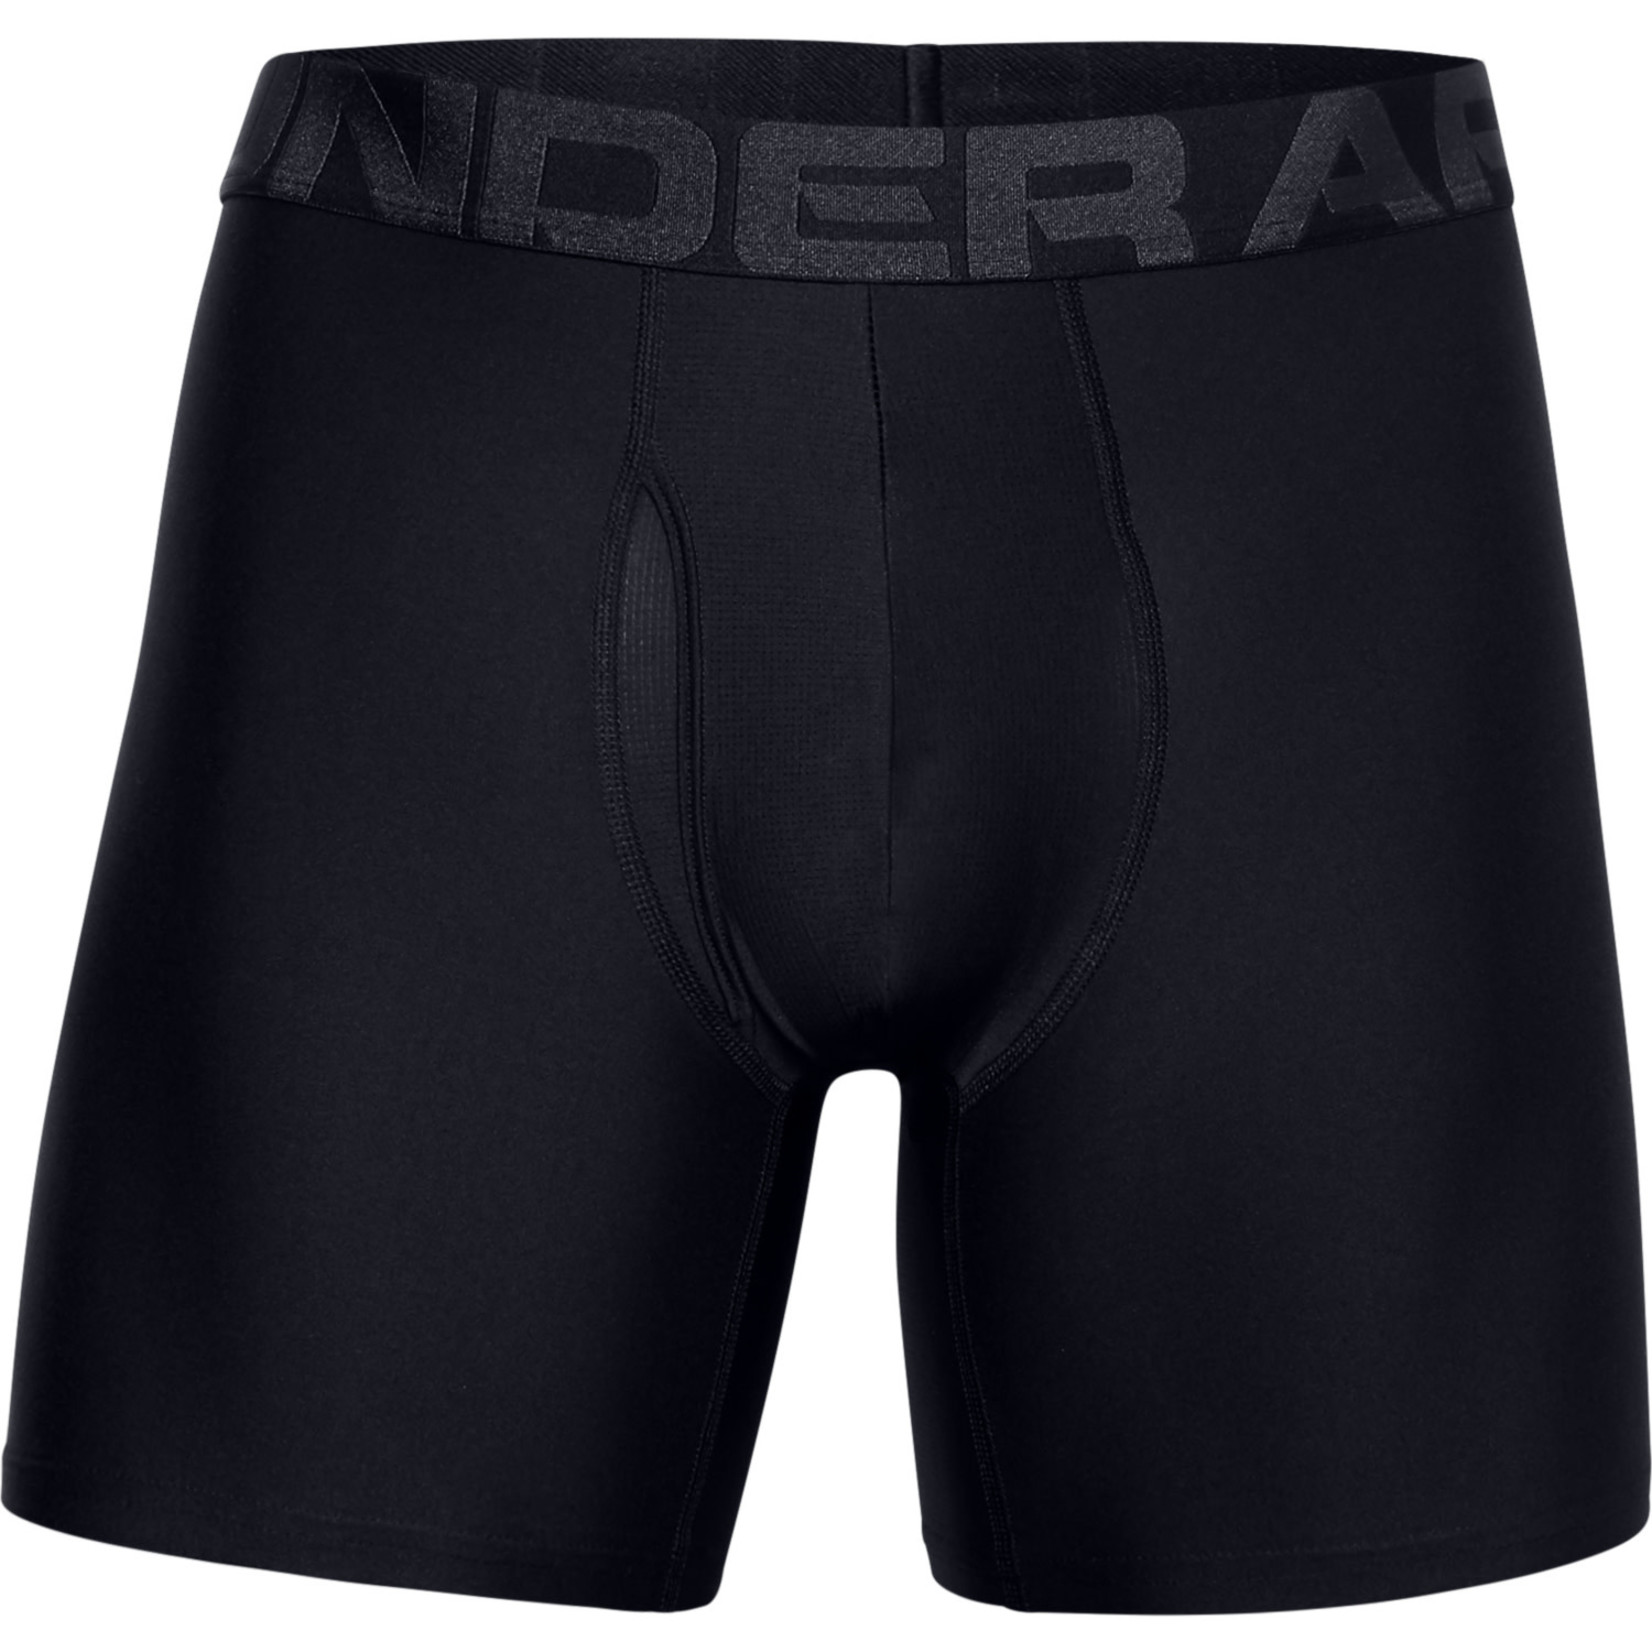 Under Armour UA Tech 6in Boxers 2 Pack-BLACK